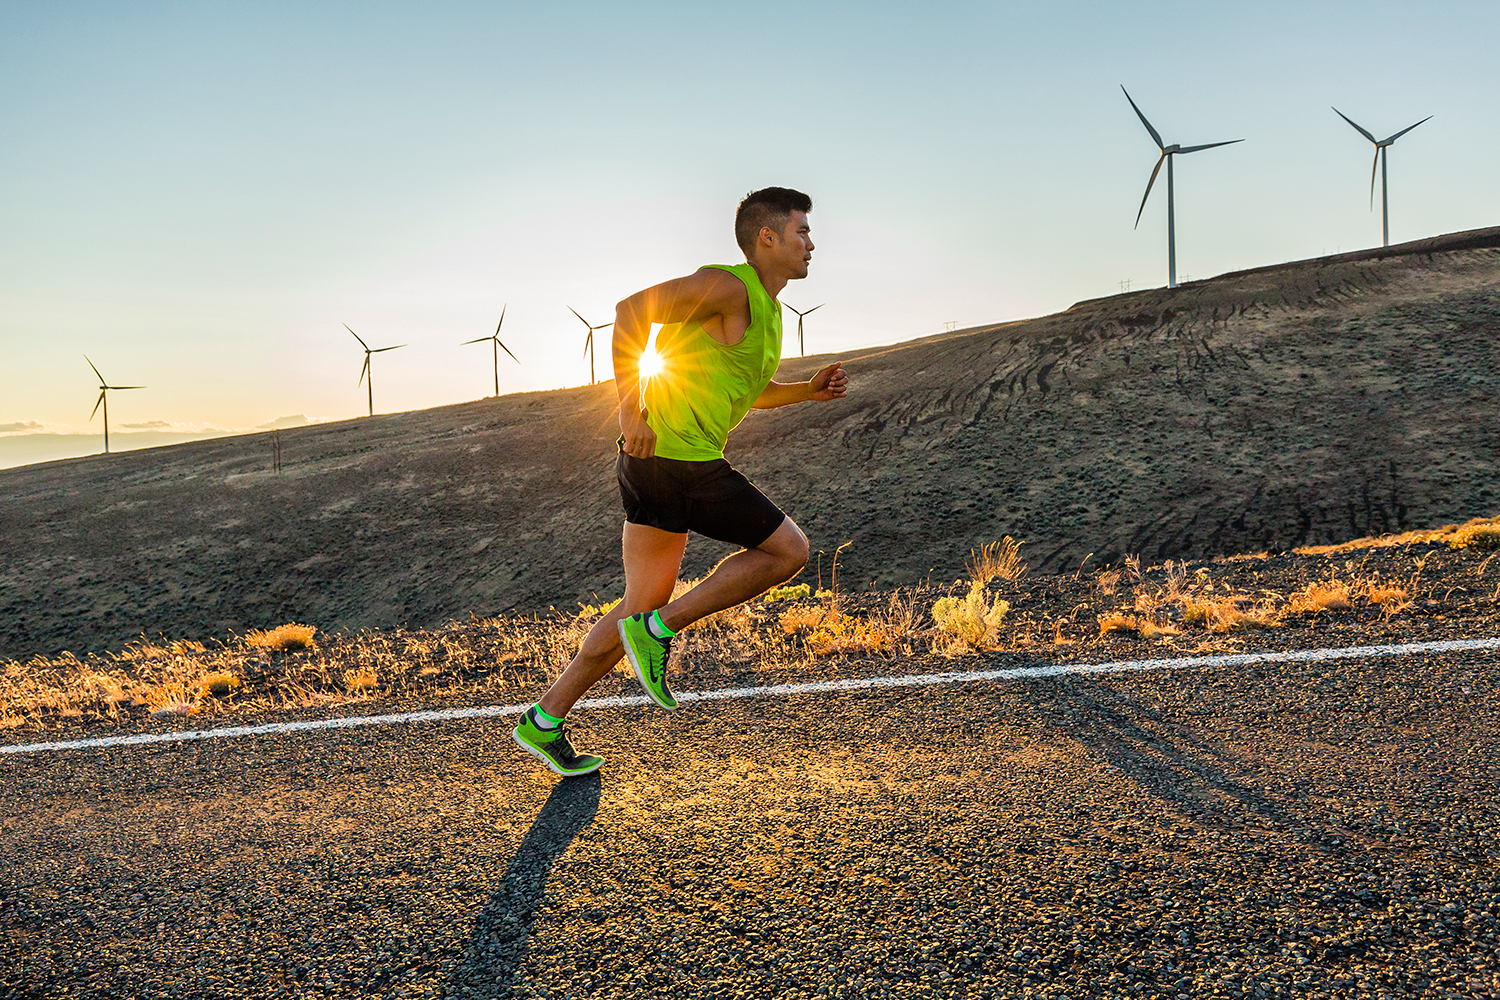 Fitness: Andrew Ignacio road running in the desert through Whiskey Dick wildlife refuge, Vantage, Washington